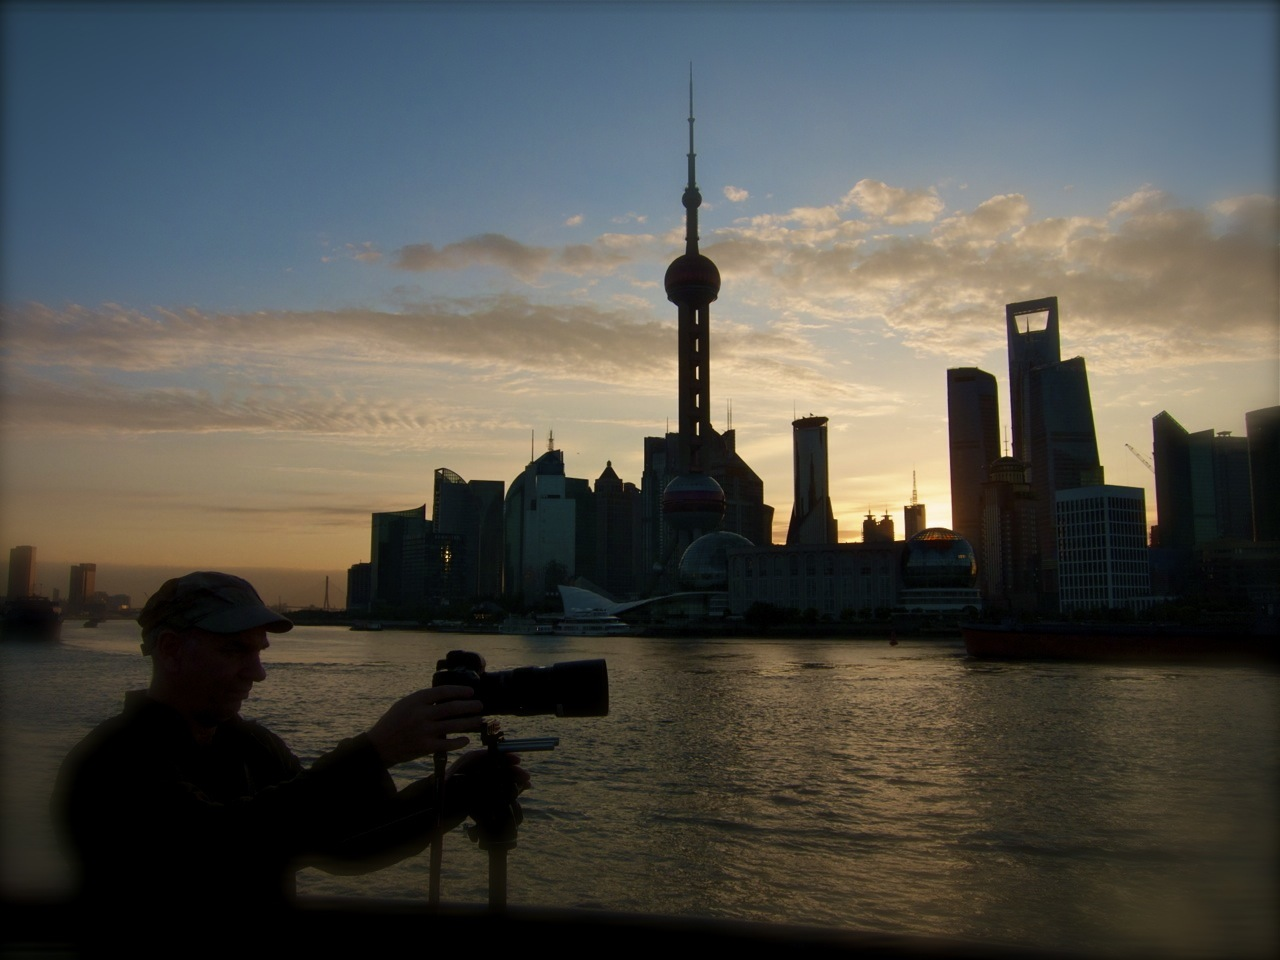 Sunset on The Bund